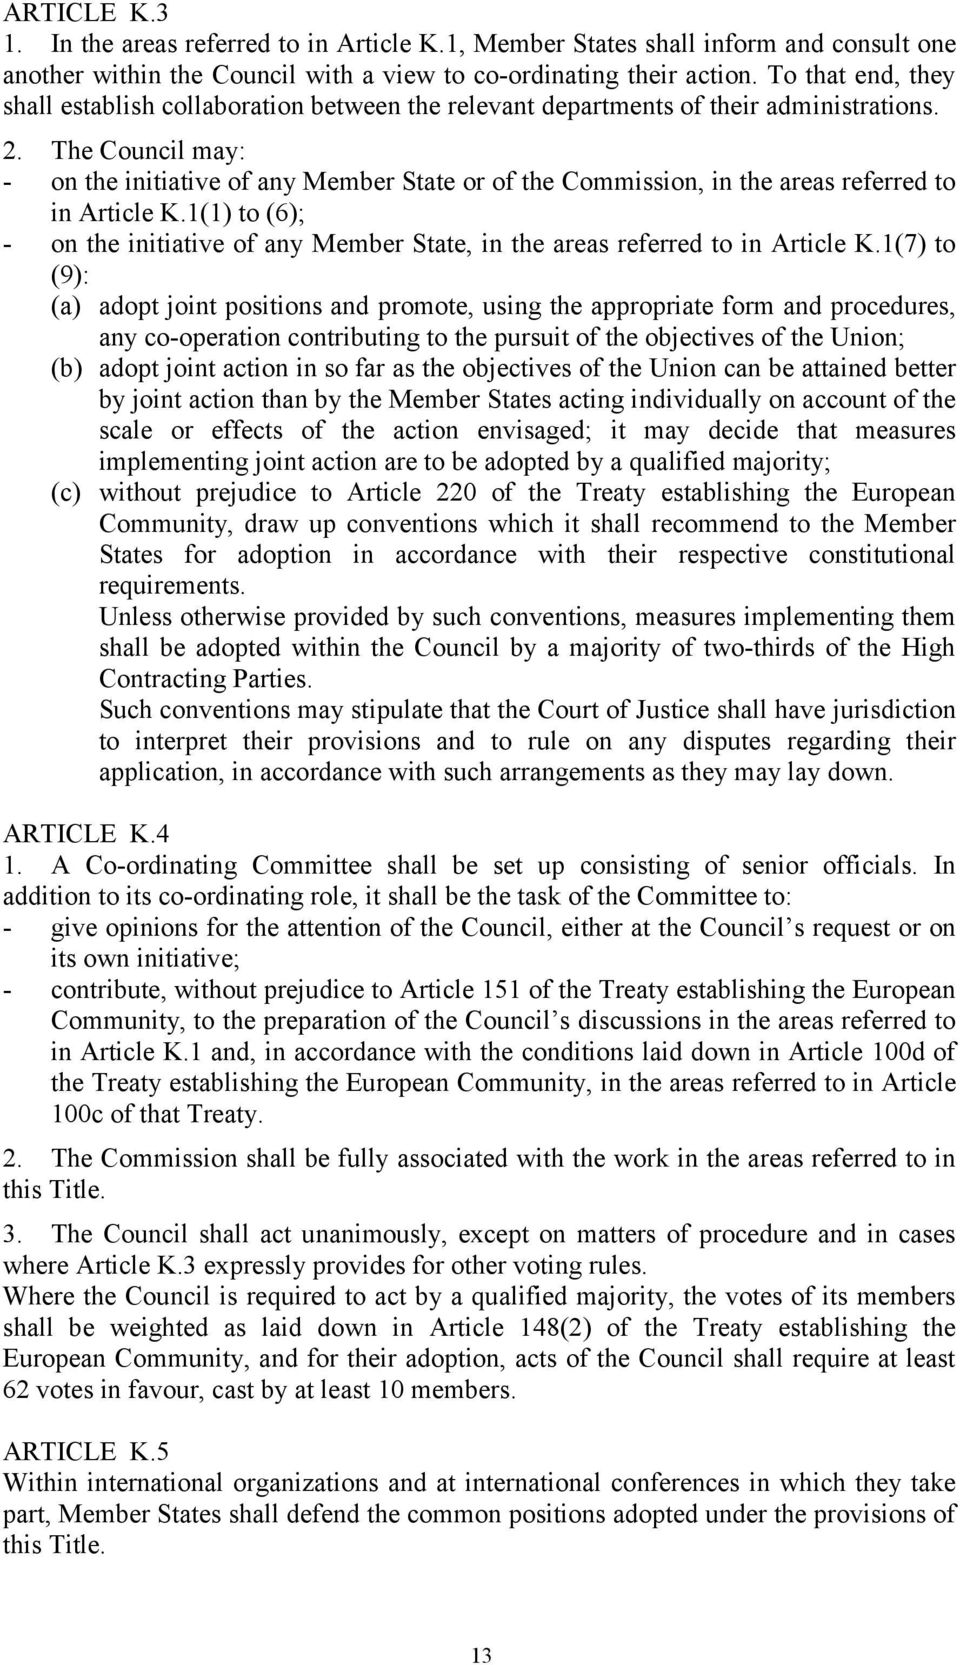 The Council may: - on the initiative of any Member State or of the Commission, in the areas referred to in Article K.